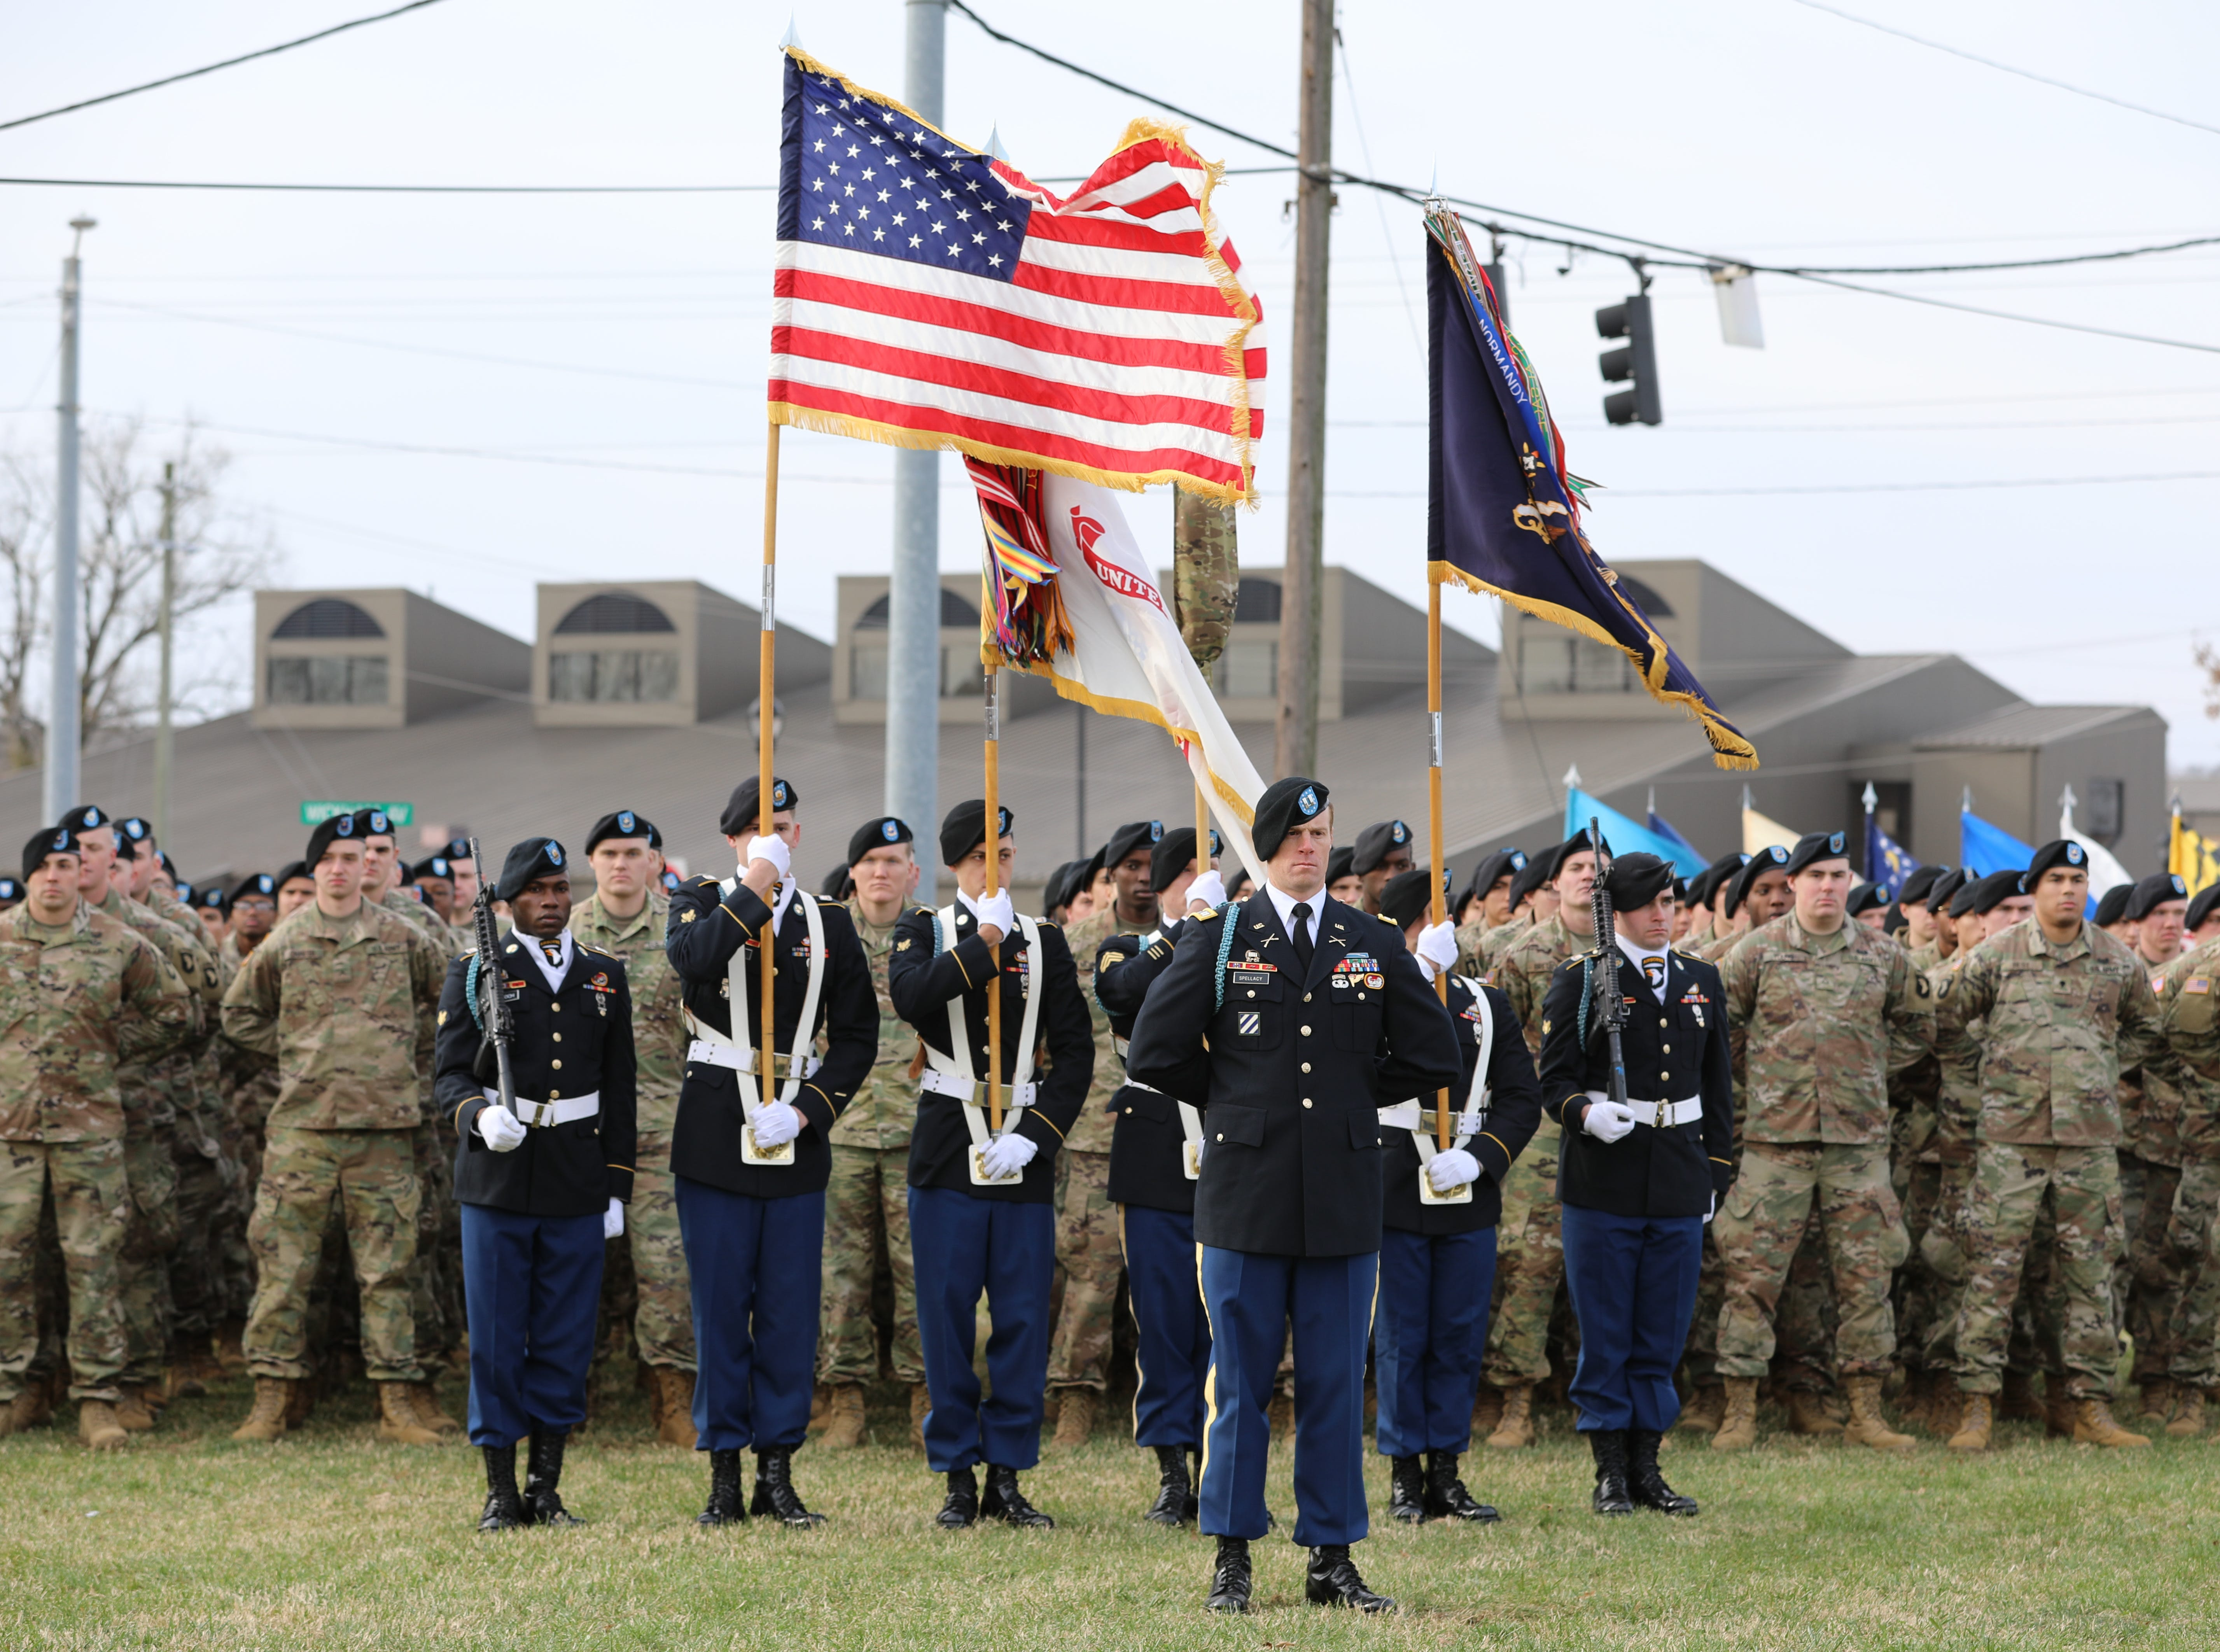 Soldiers and Color guard stand on the Gander Memorial grounds to pay tributes to the fallen Soldiers of Gander at Fort Campbell, KY Dec. 12, 2018.